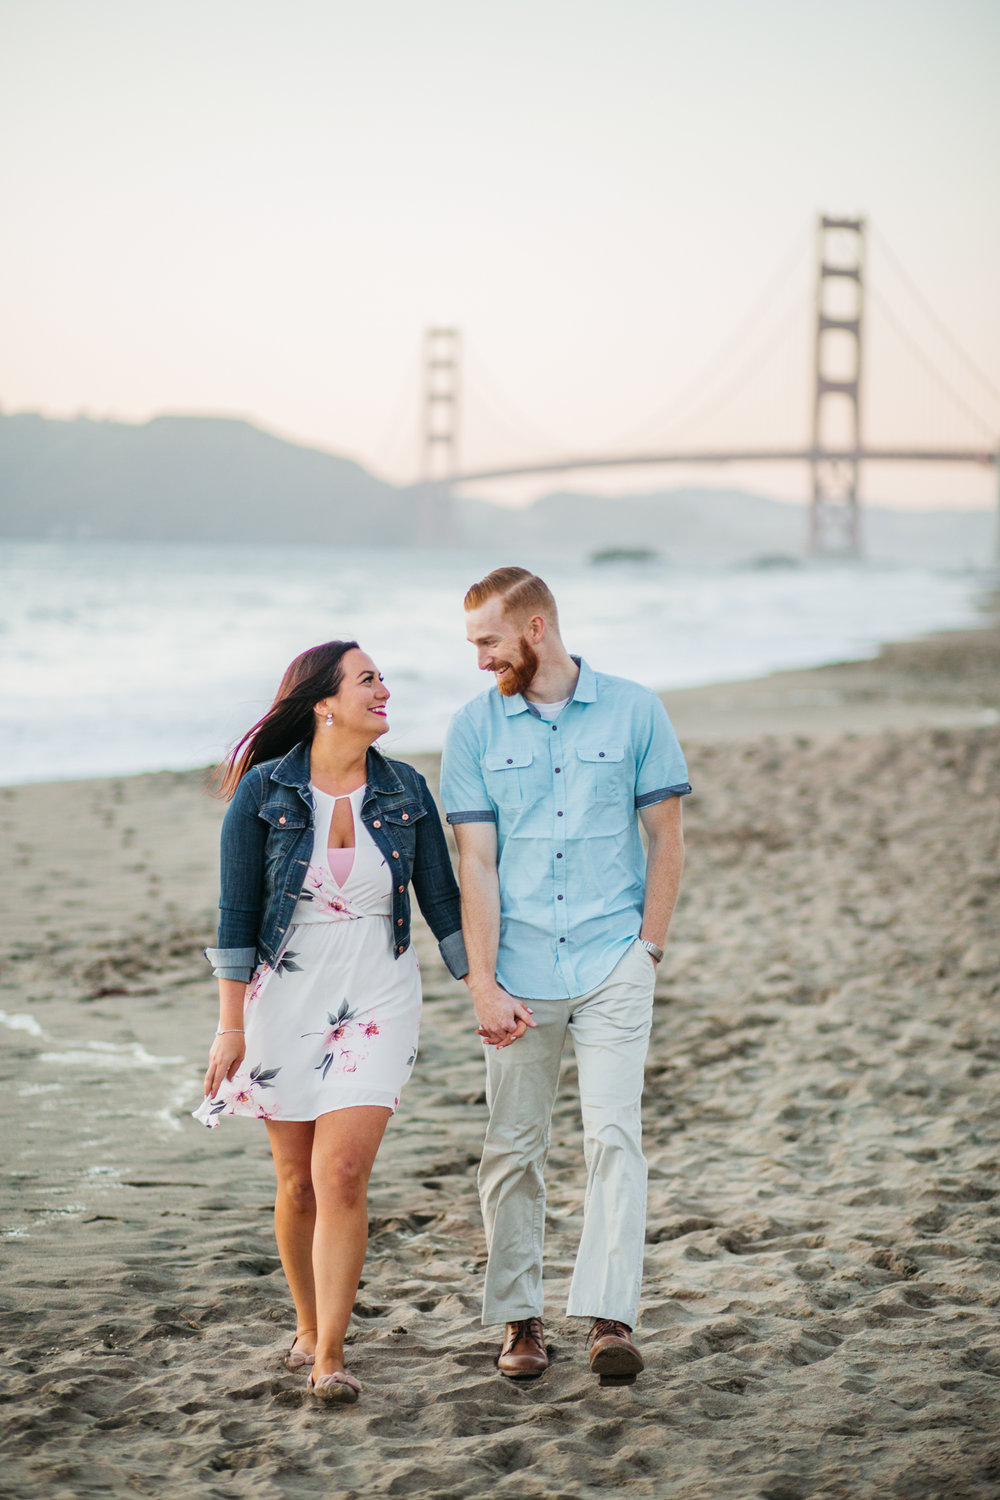 Engagement Photos-San Fransisco-Golden Gate Park-Ranalla Photo & Films-66.jpg